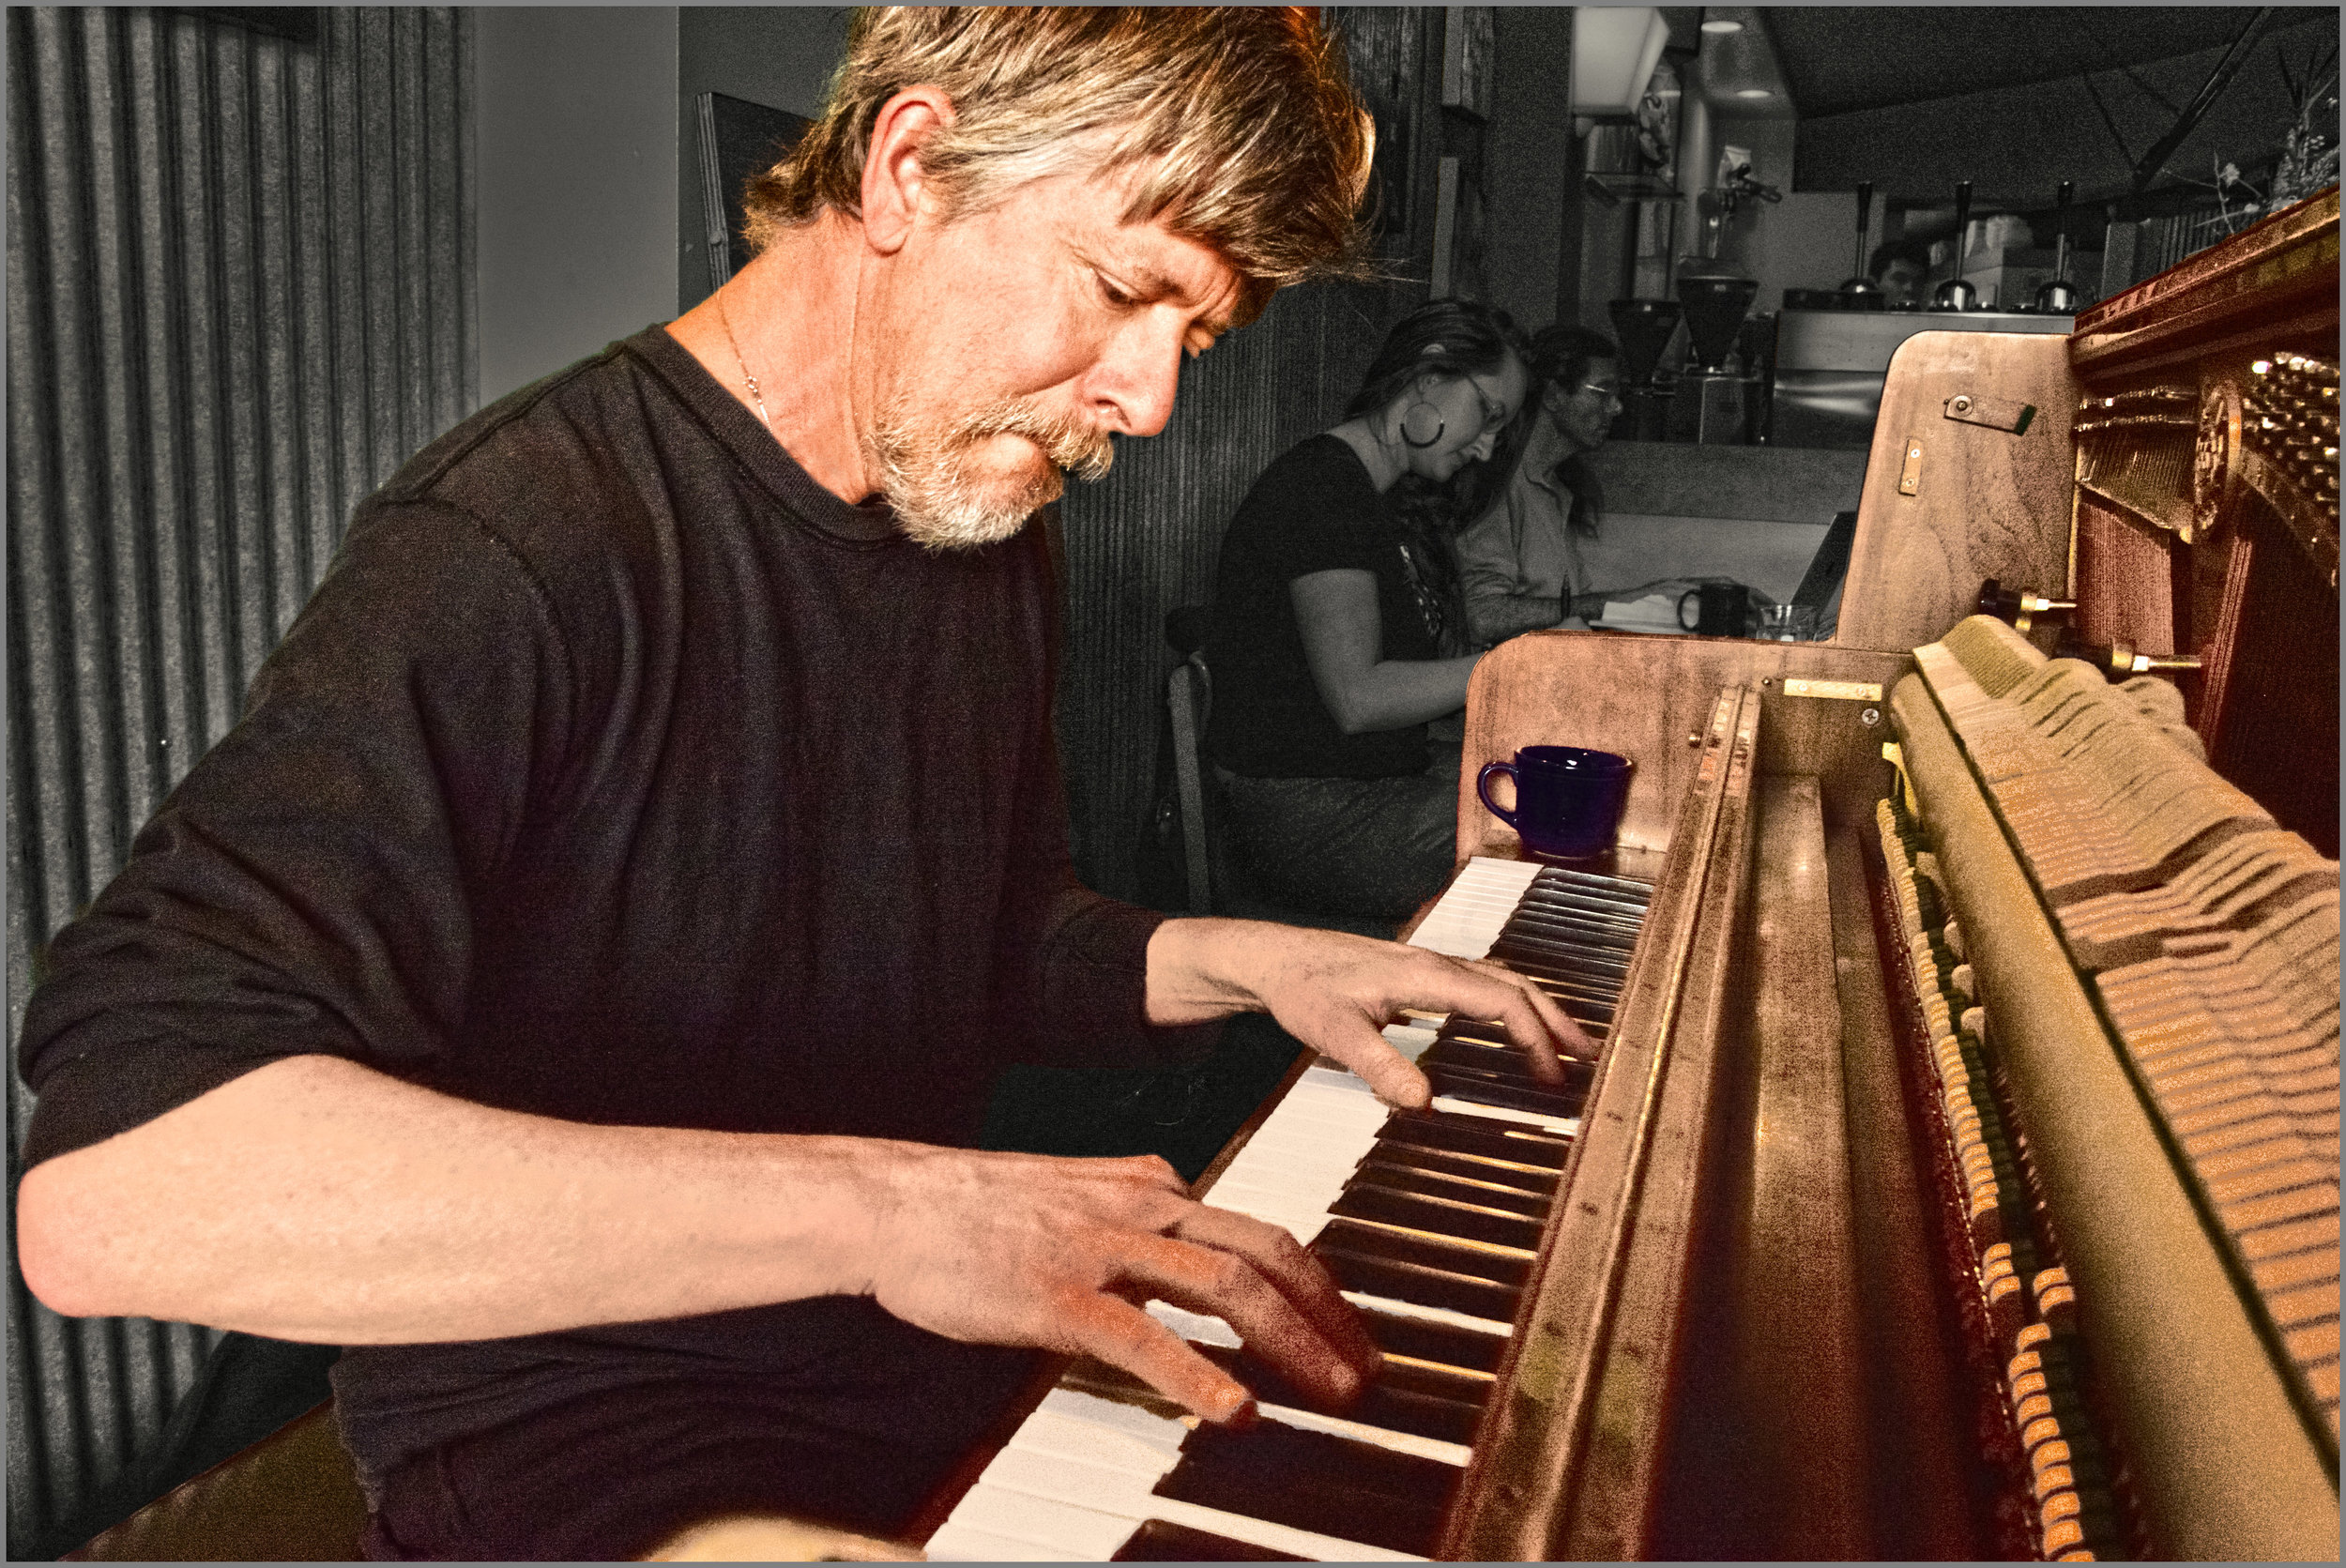 Scott Heating Up The Keys 2.jpg